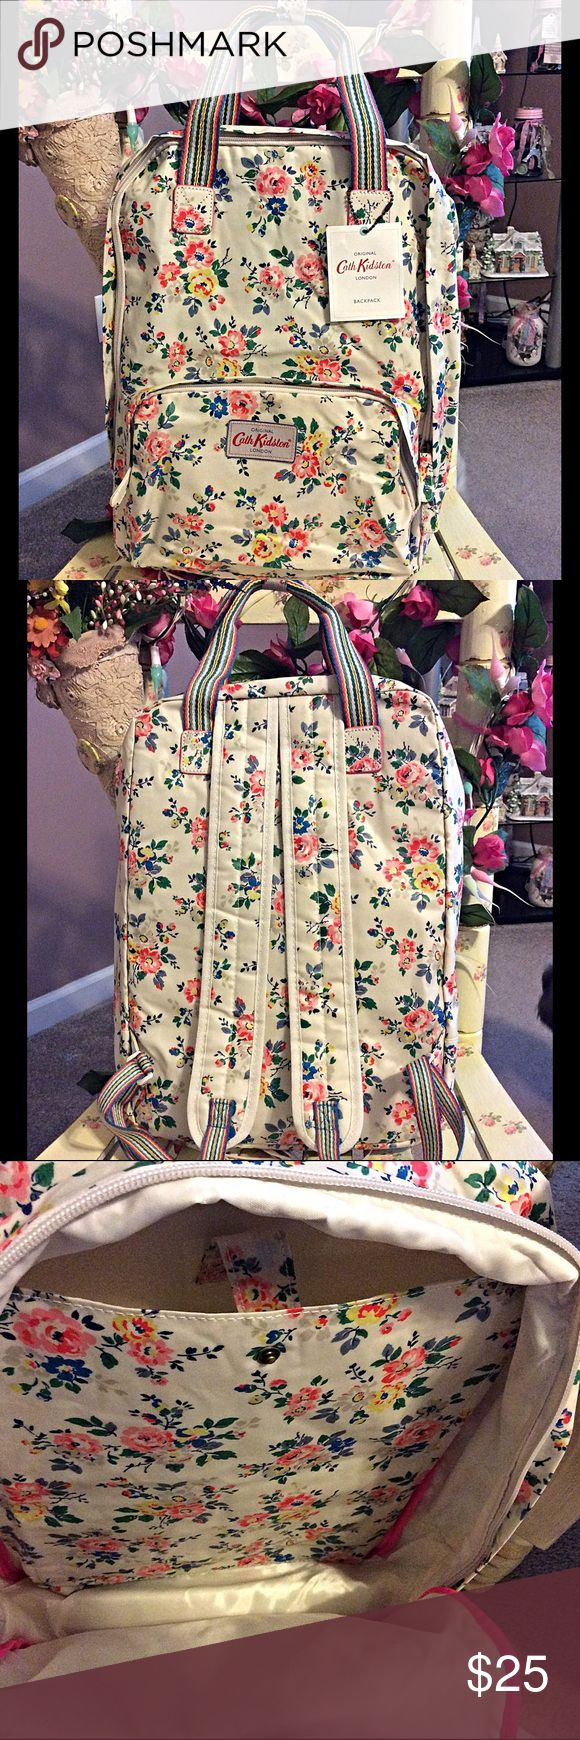 "Cath Kidston backpack NWT Cath Kidston oilcloth shabby chic floral backpack Padded laptop sleeve in bag fits most 13"" laptops Super lightweight Water resistant and wipe able oilcloth Fully lined interior Very nice backpack NWT Cath Kidston Bags Backpacks"